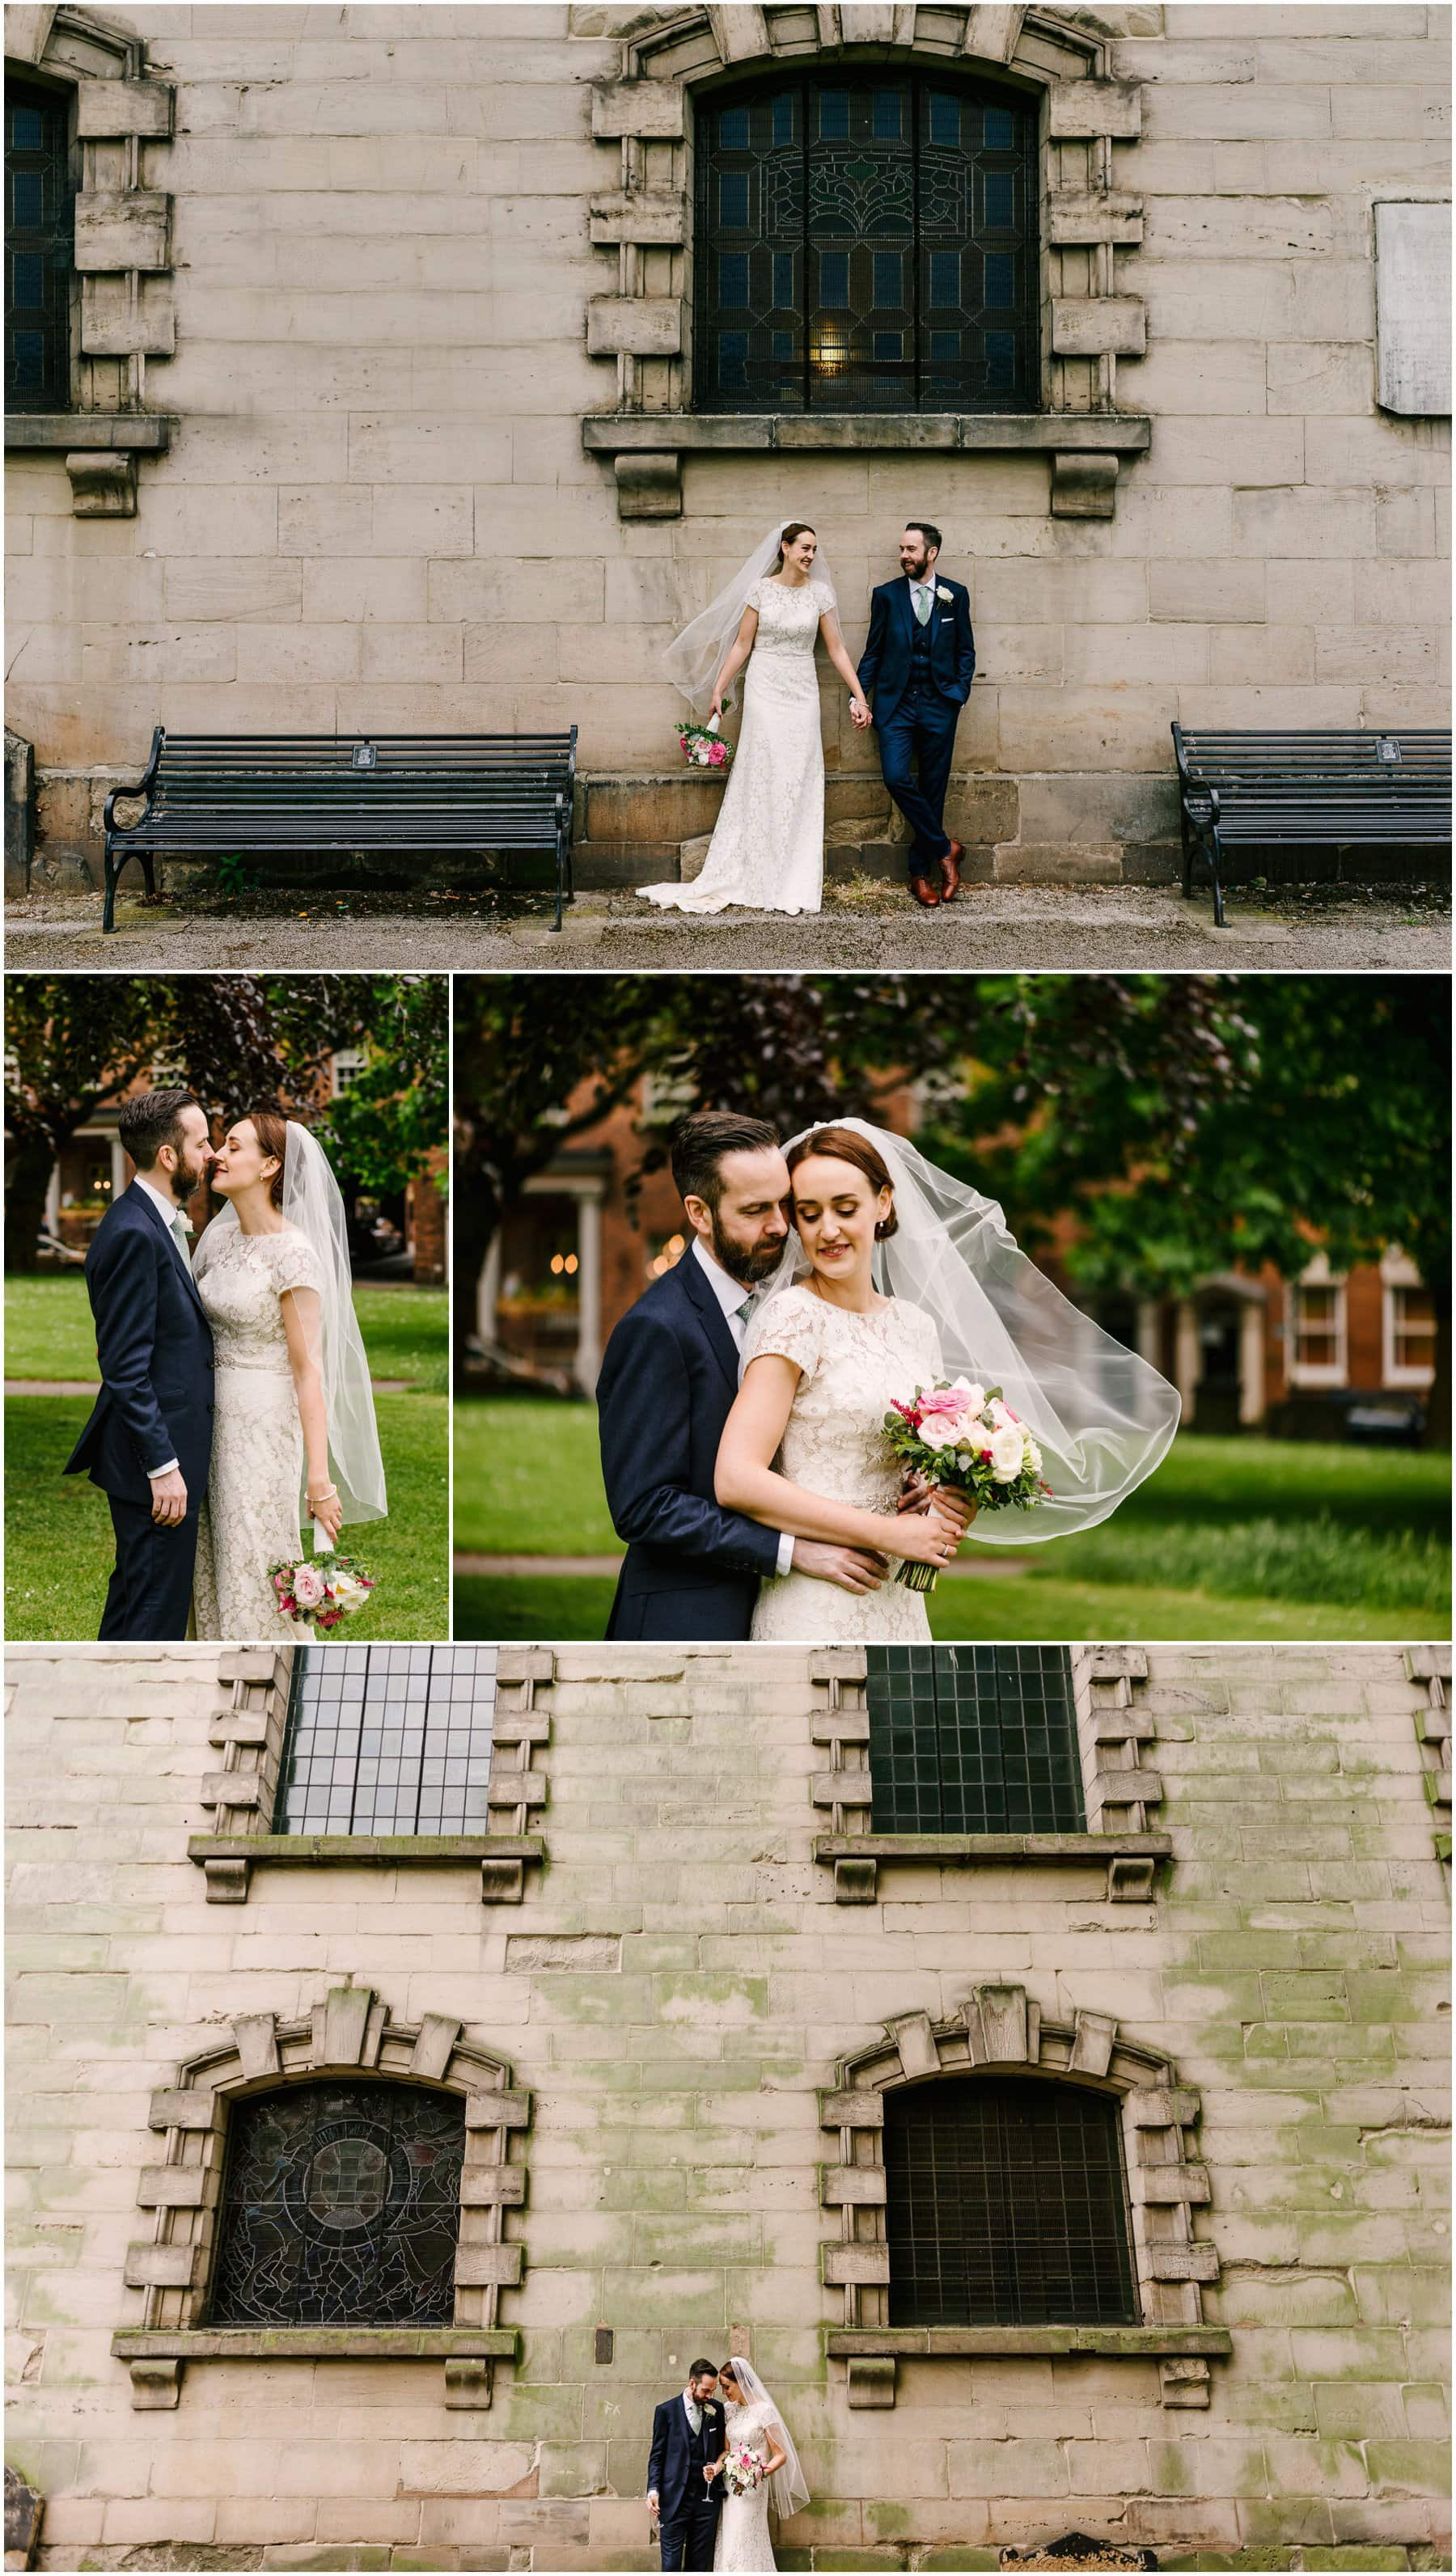 Helen And Dans Beautiful Birmingham City Wedding At The Studio